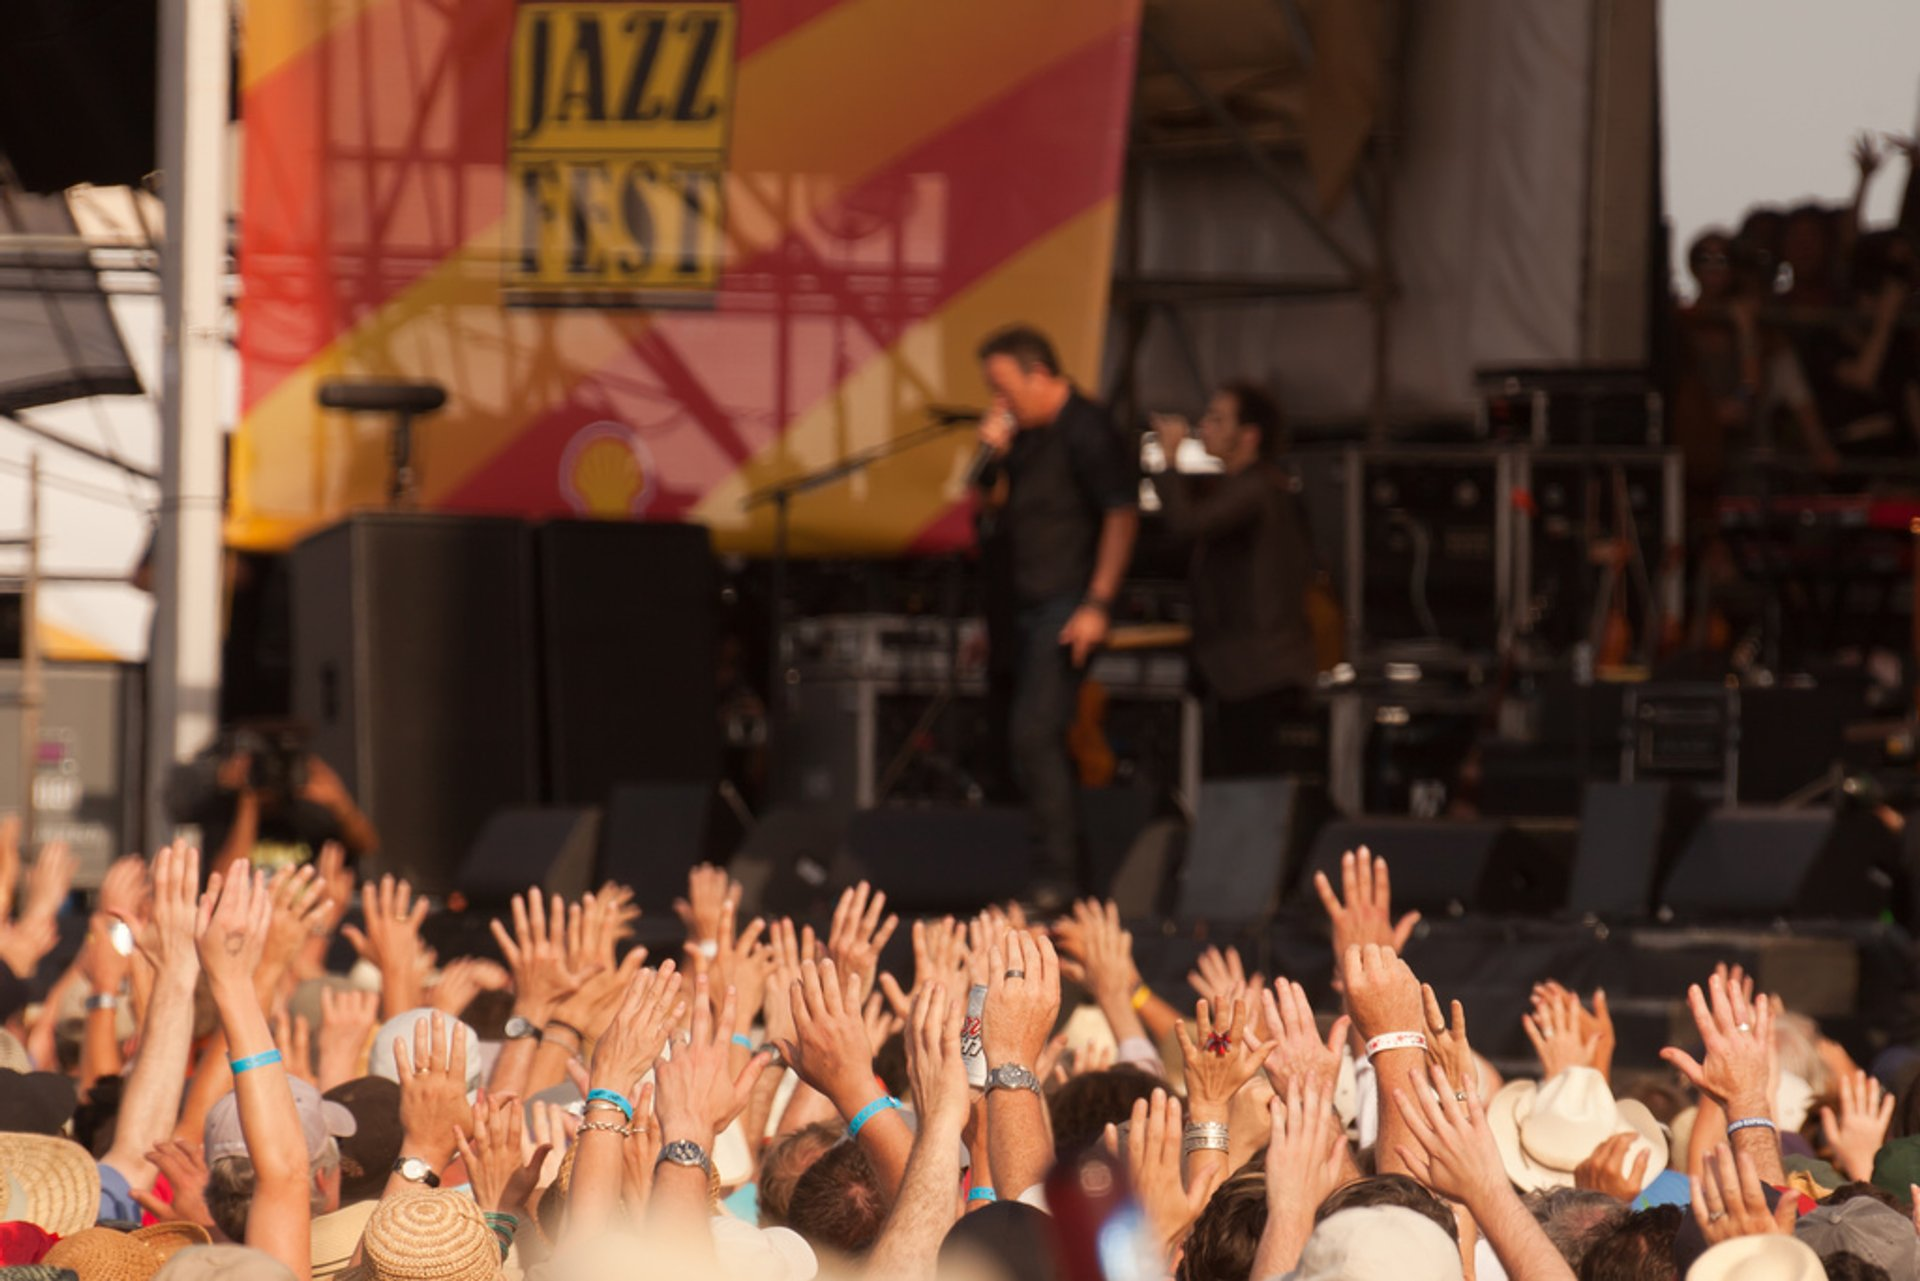 New Orleans Jazz and Heritage Festival in New Orleans - Best Time